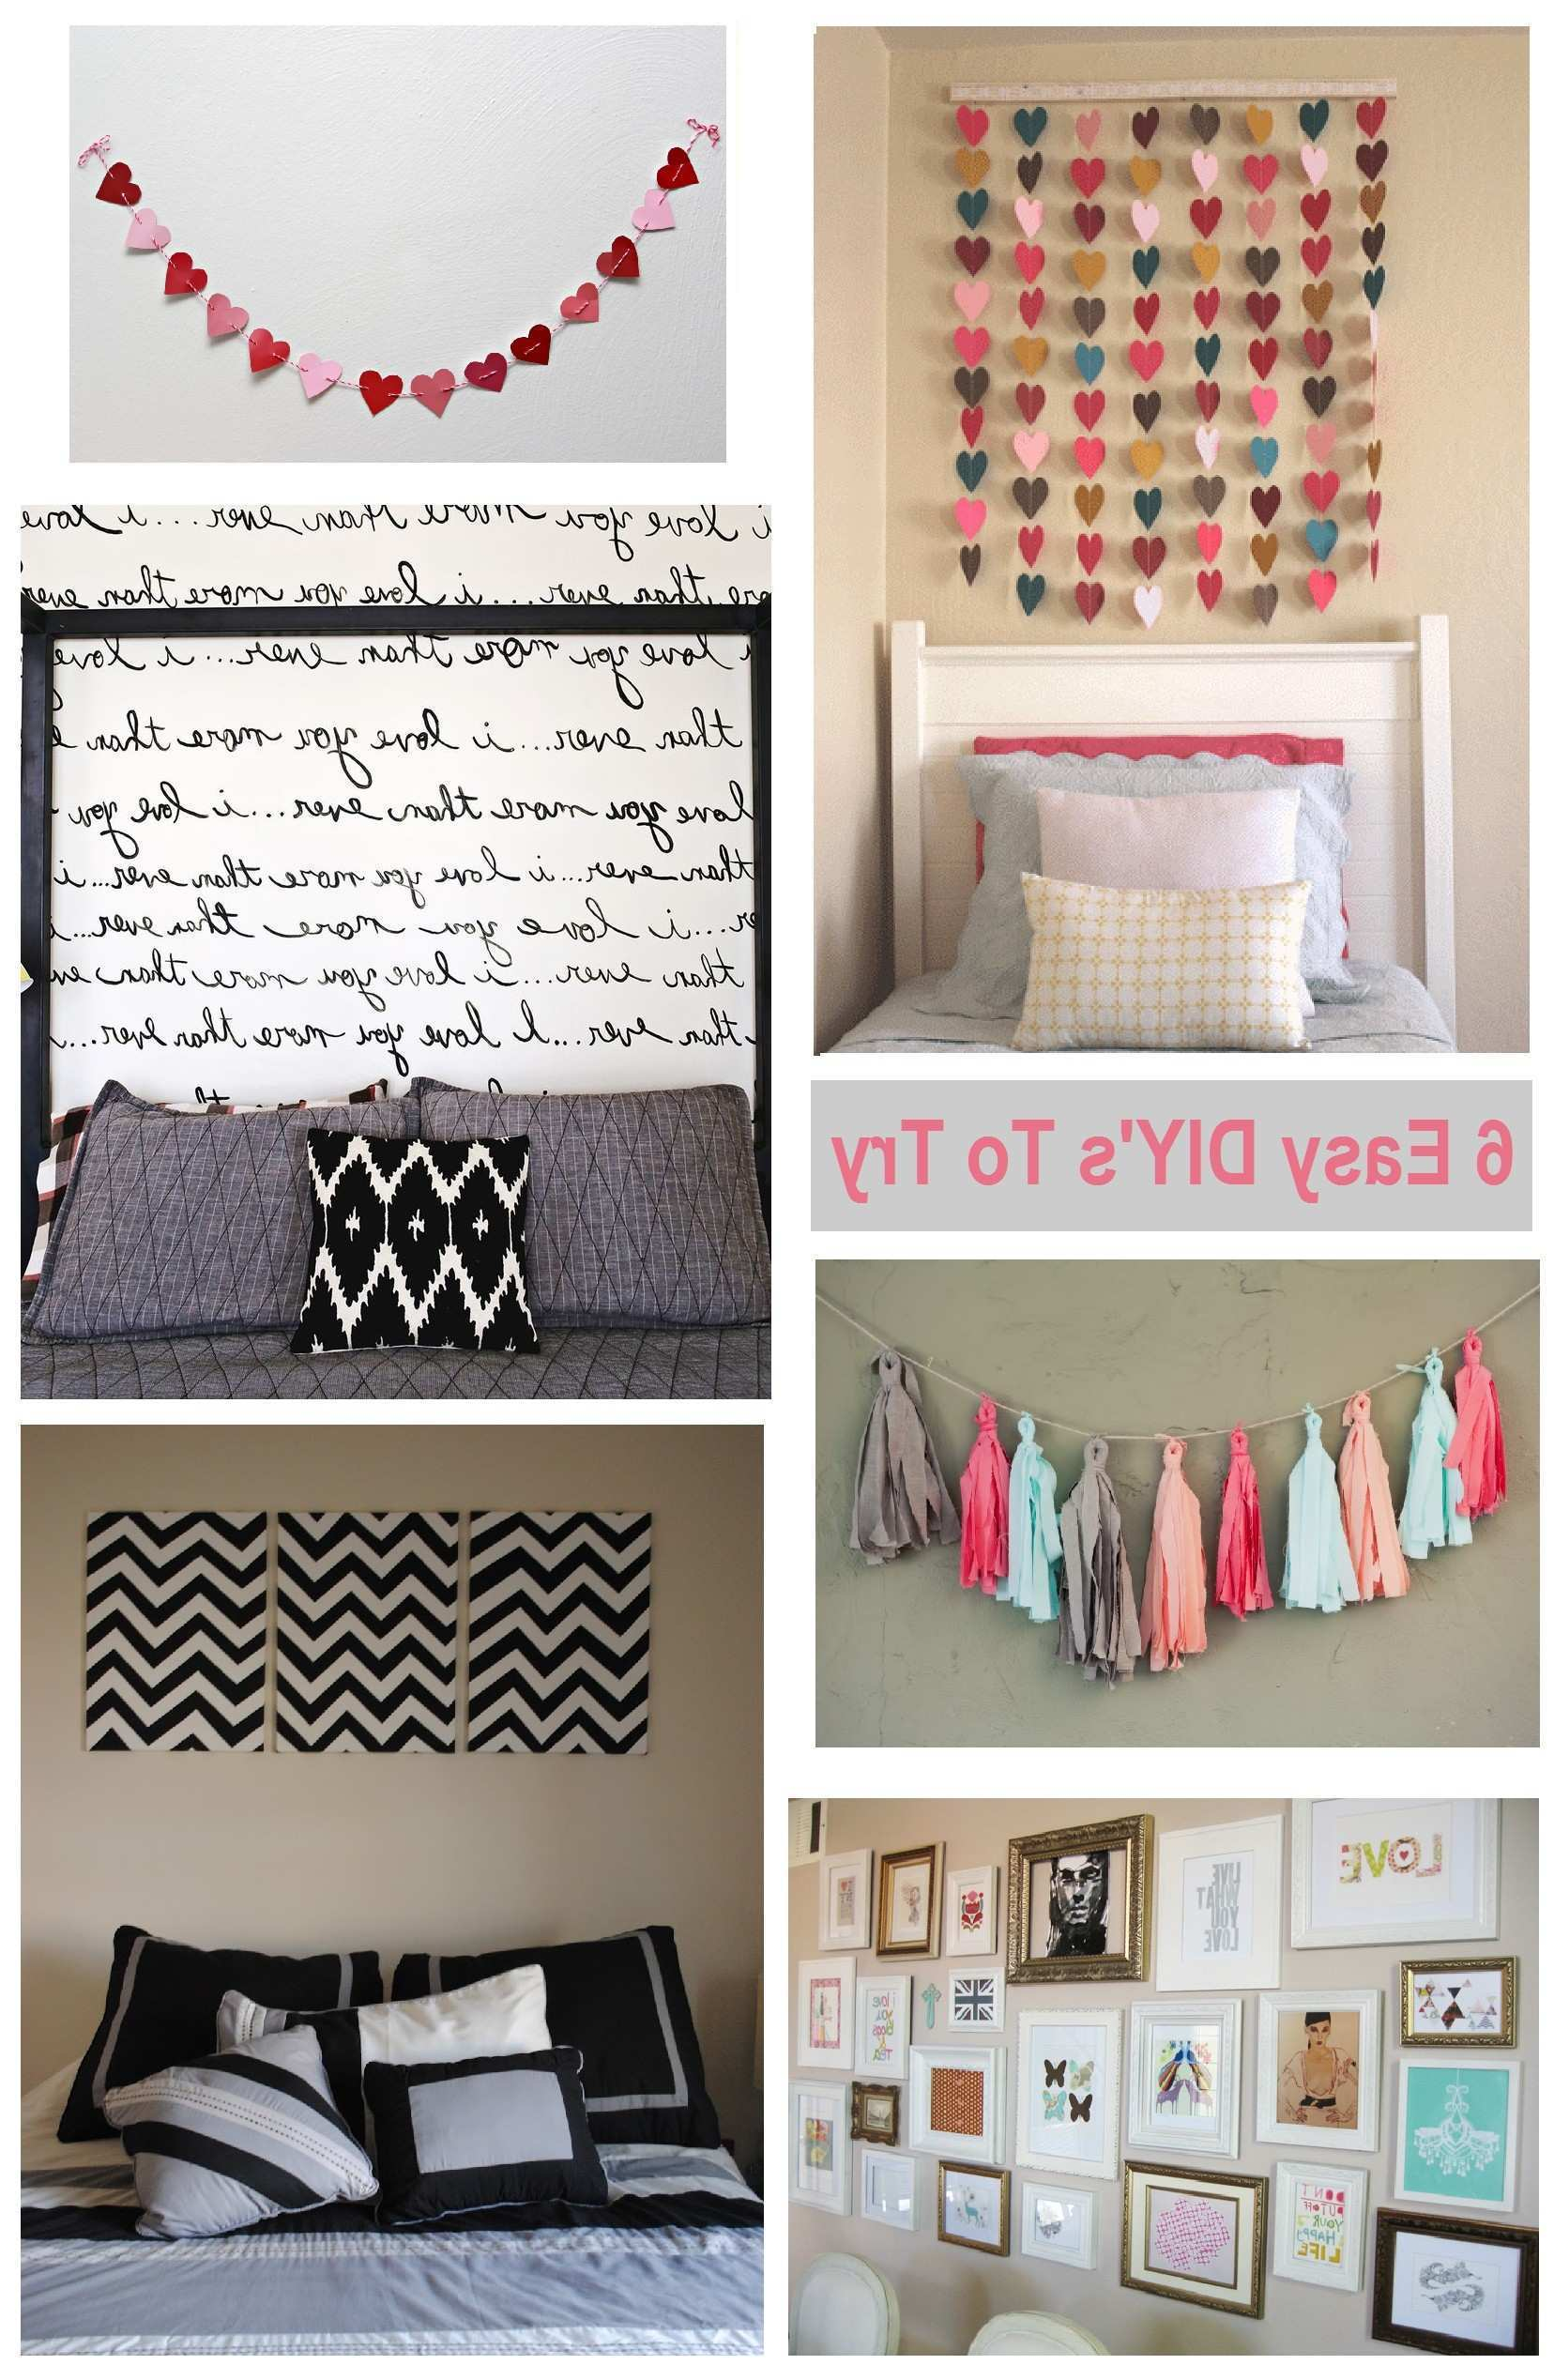 Free Download Image Lovely Tumblr Wall Decor 650 995 Tumblr Wall